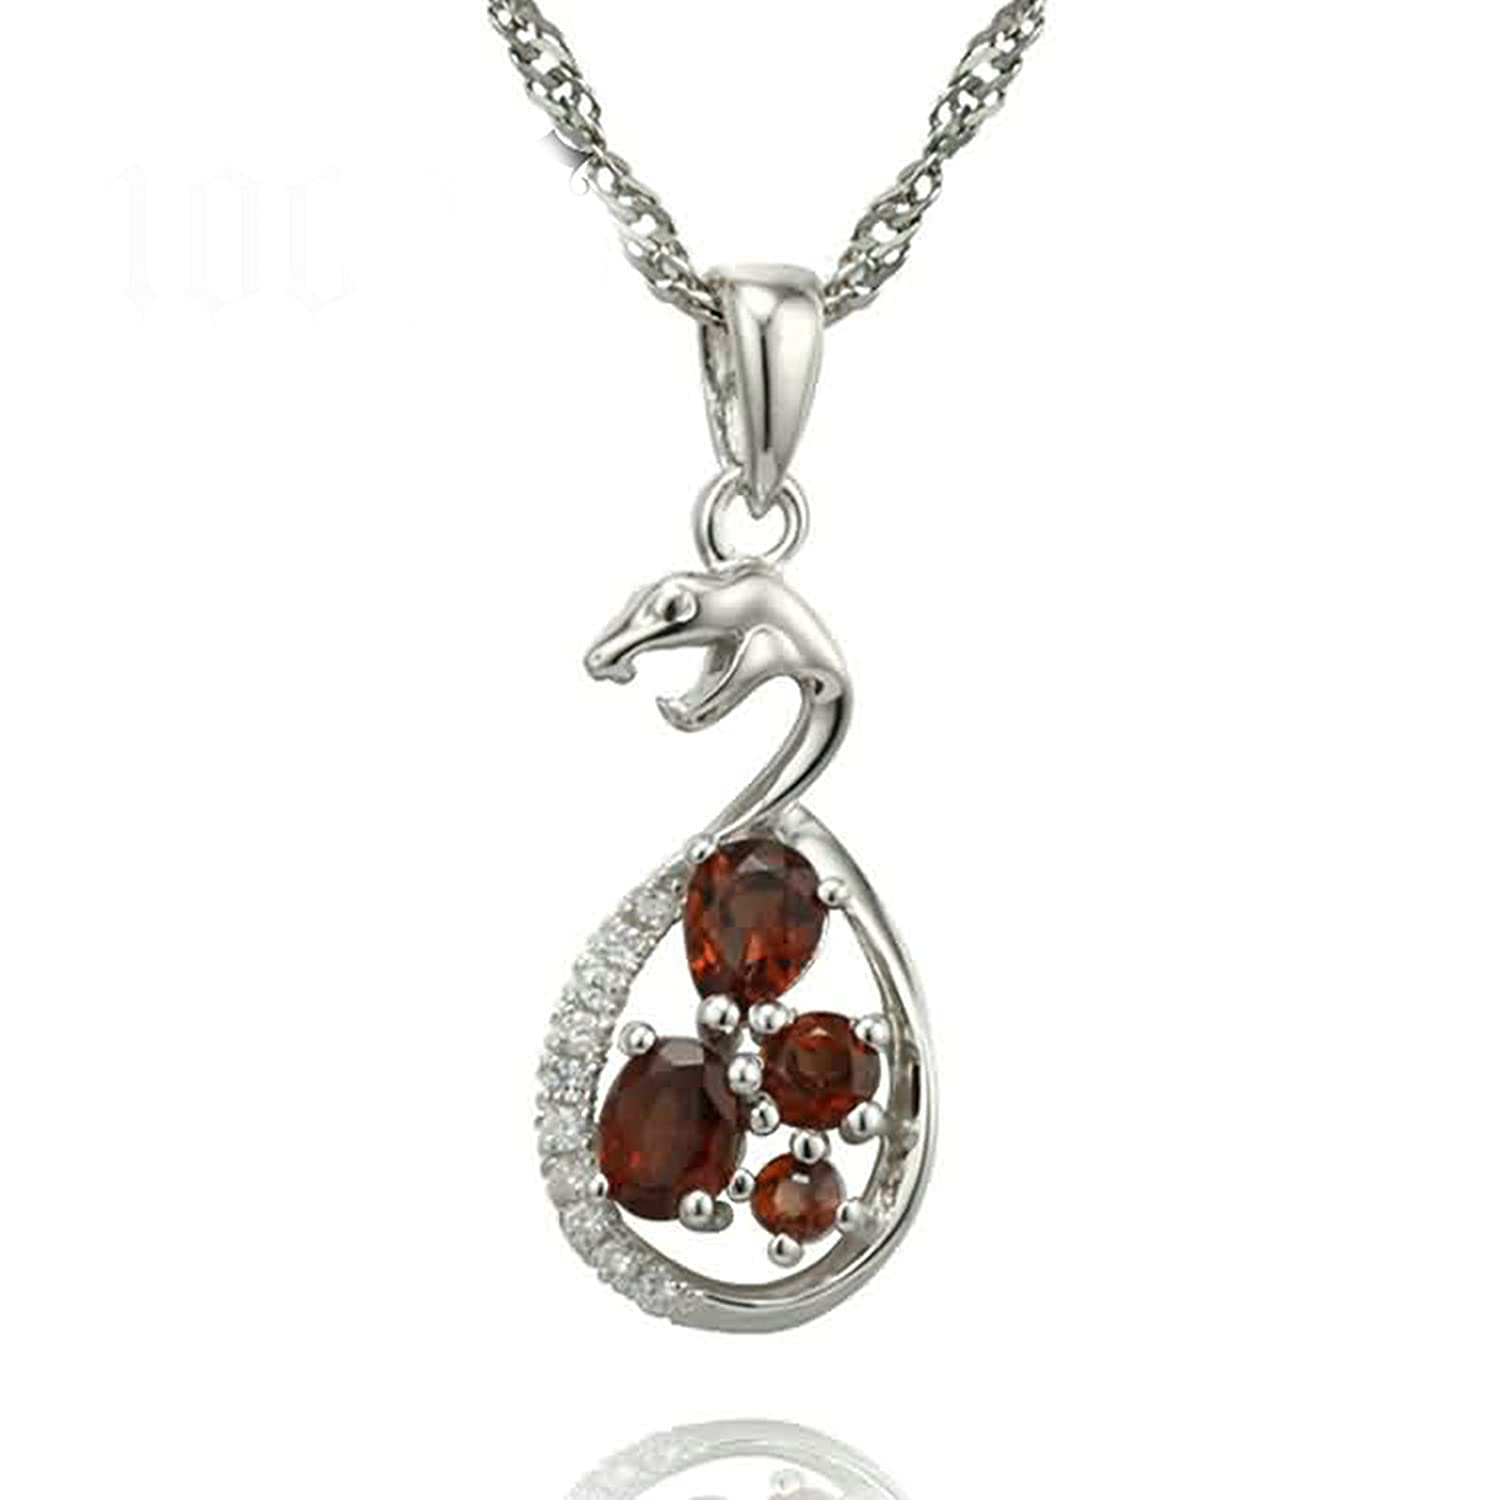 Aokarry Womens 925 Silver Sterling Pendant Necklace Snake Red